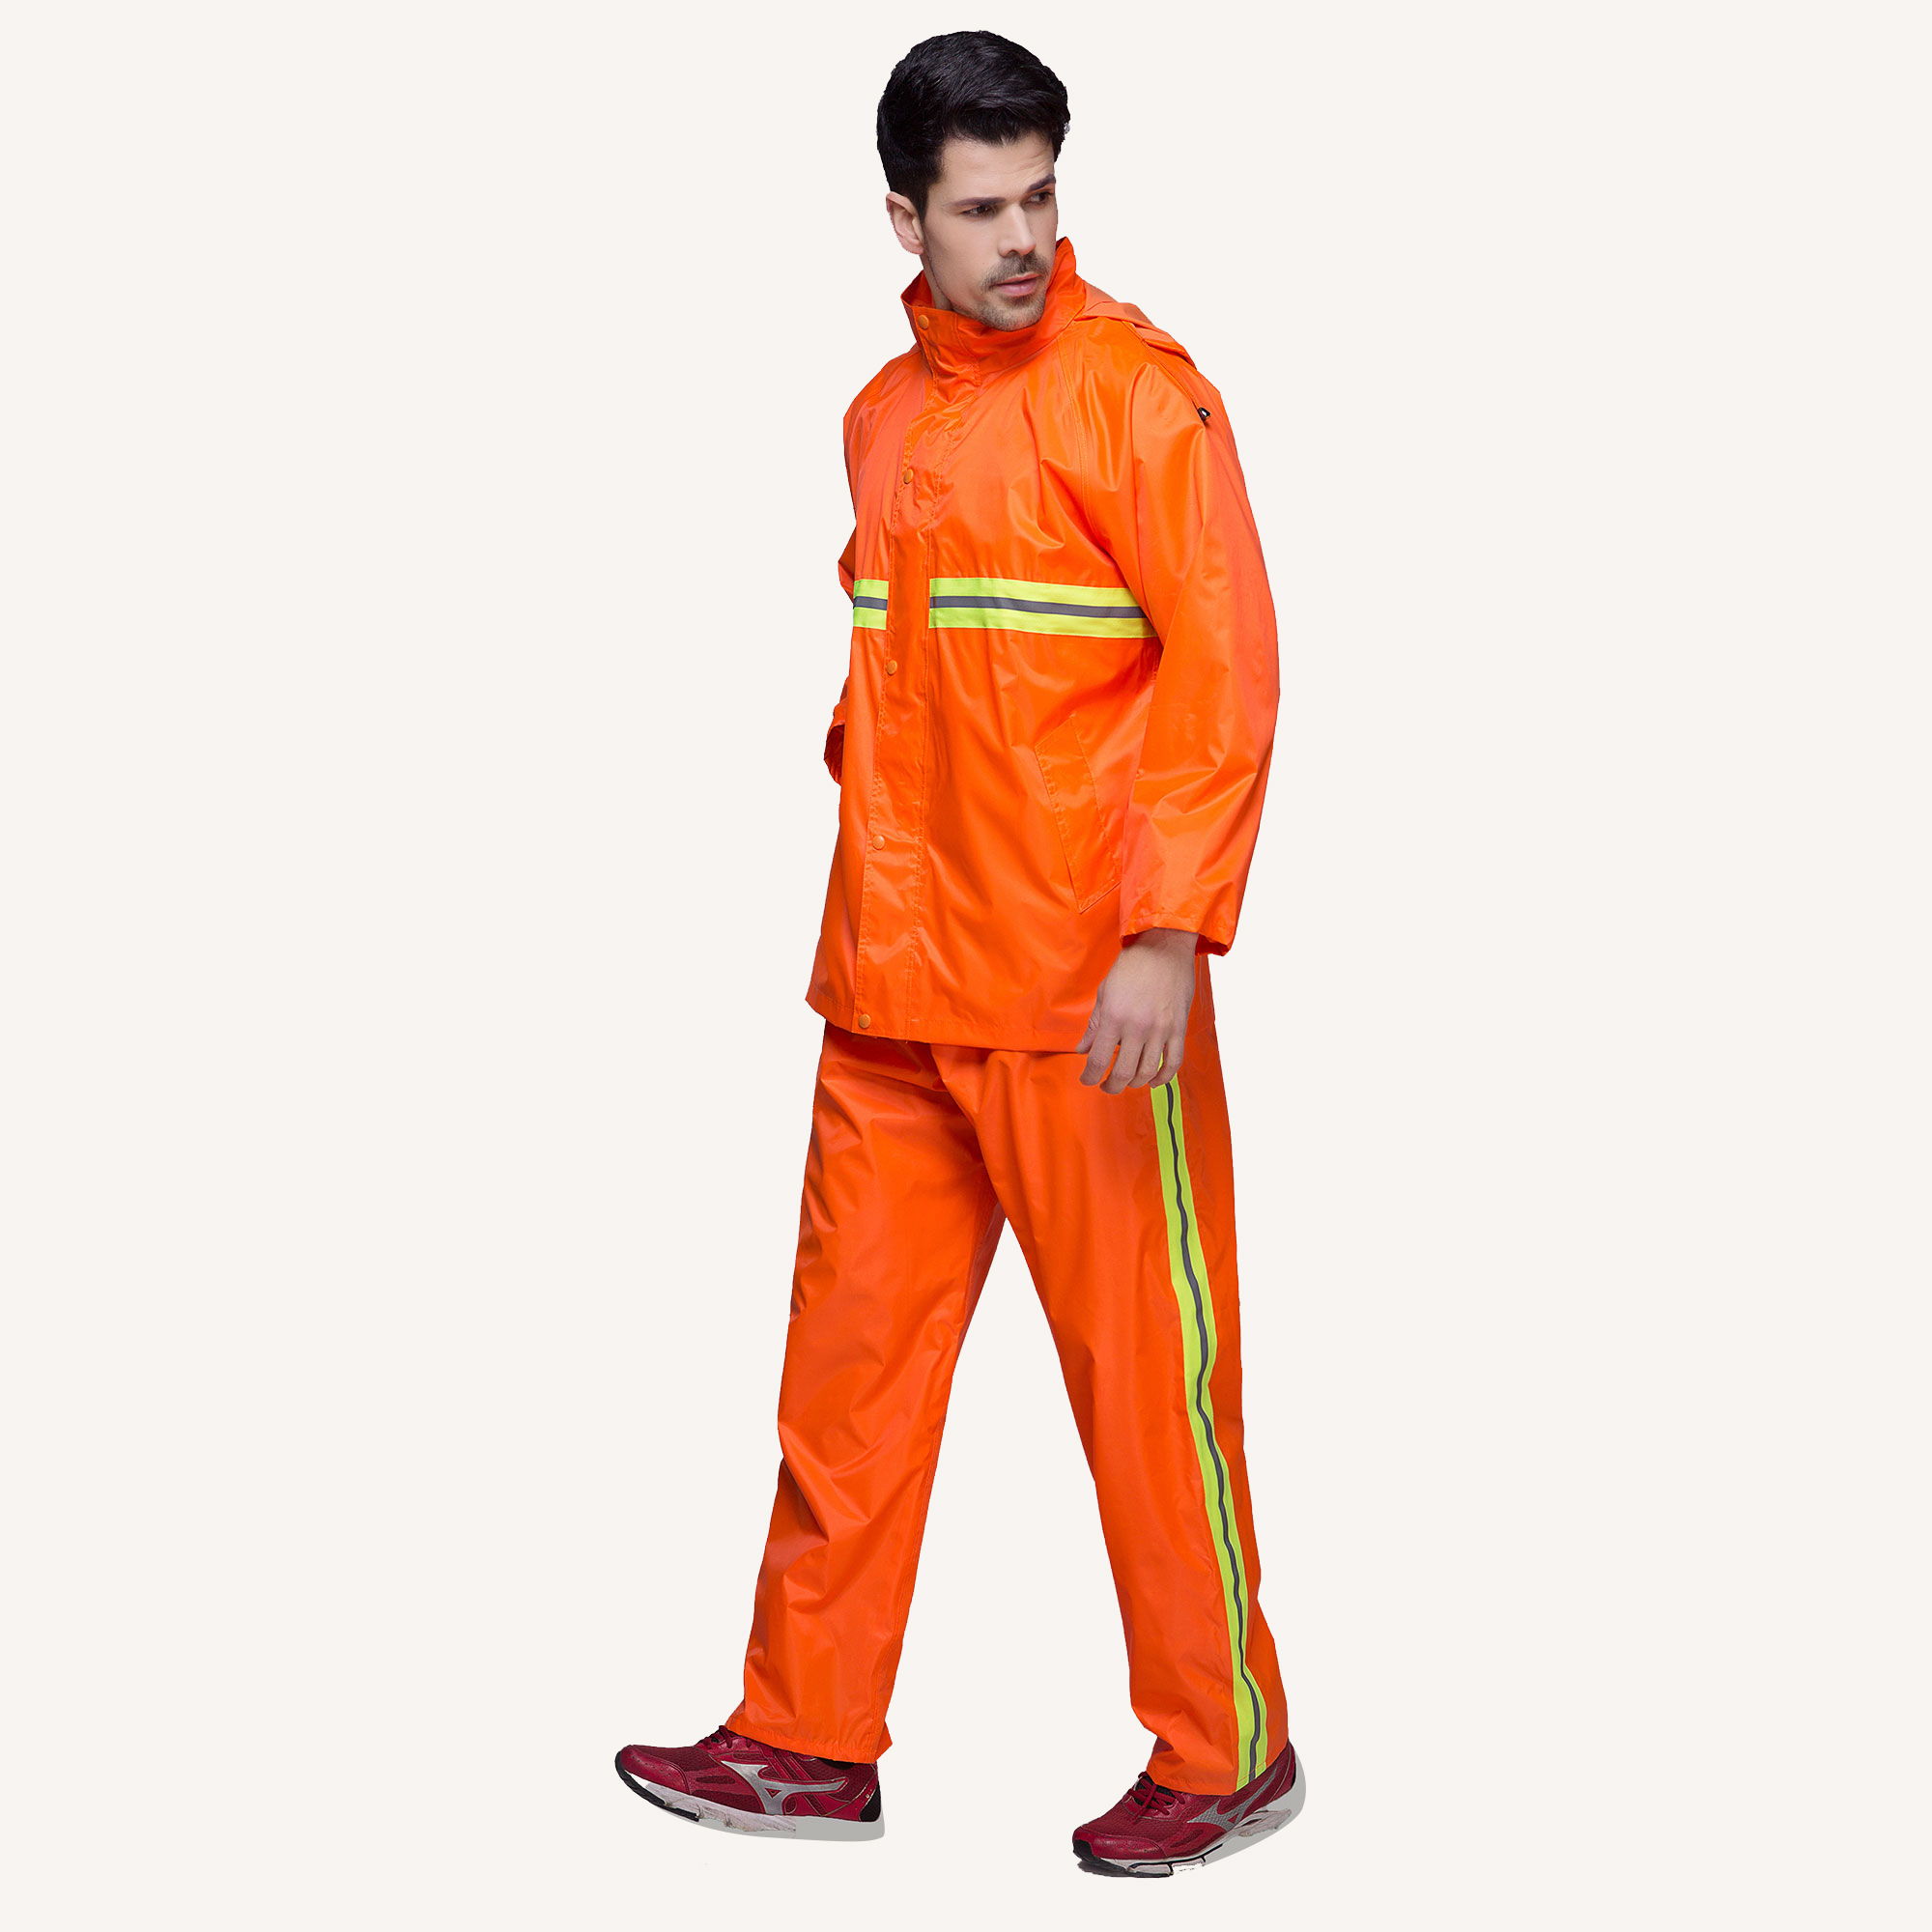 6957 Safety Waterproof Clothing Sets